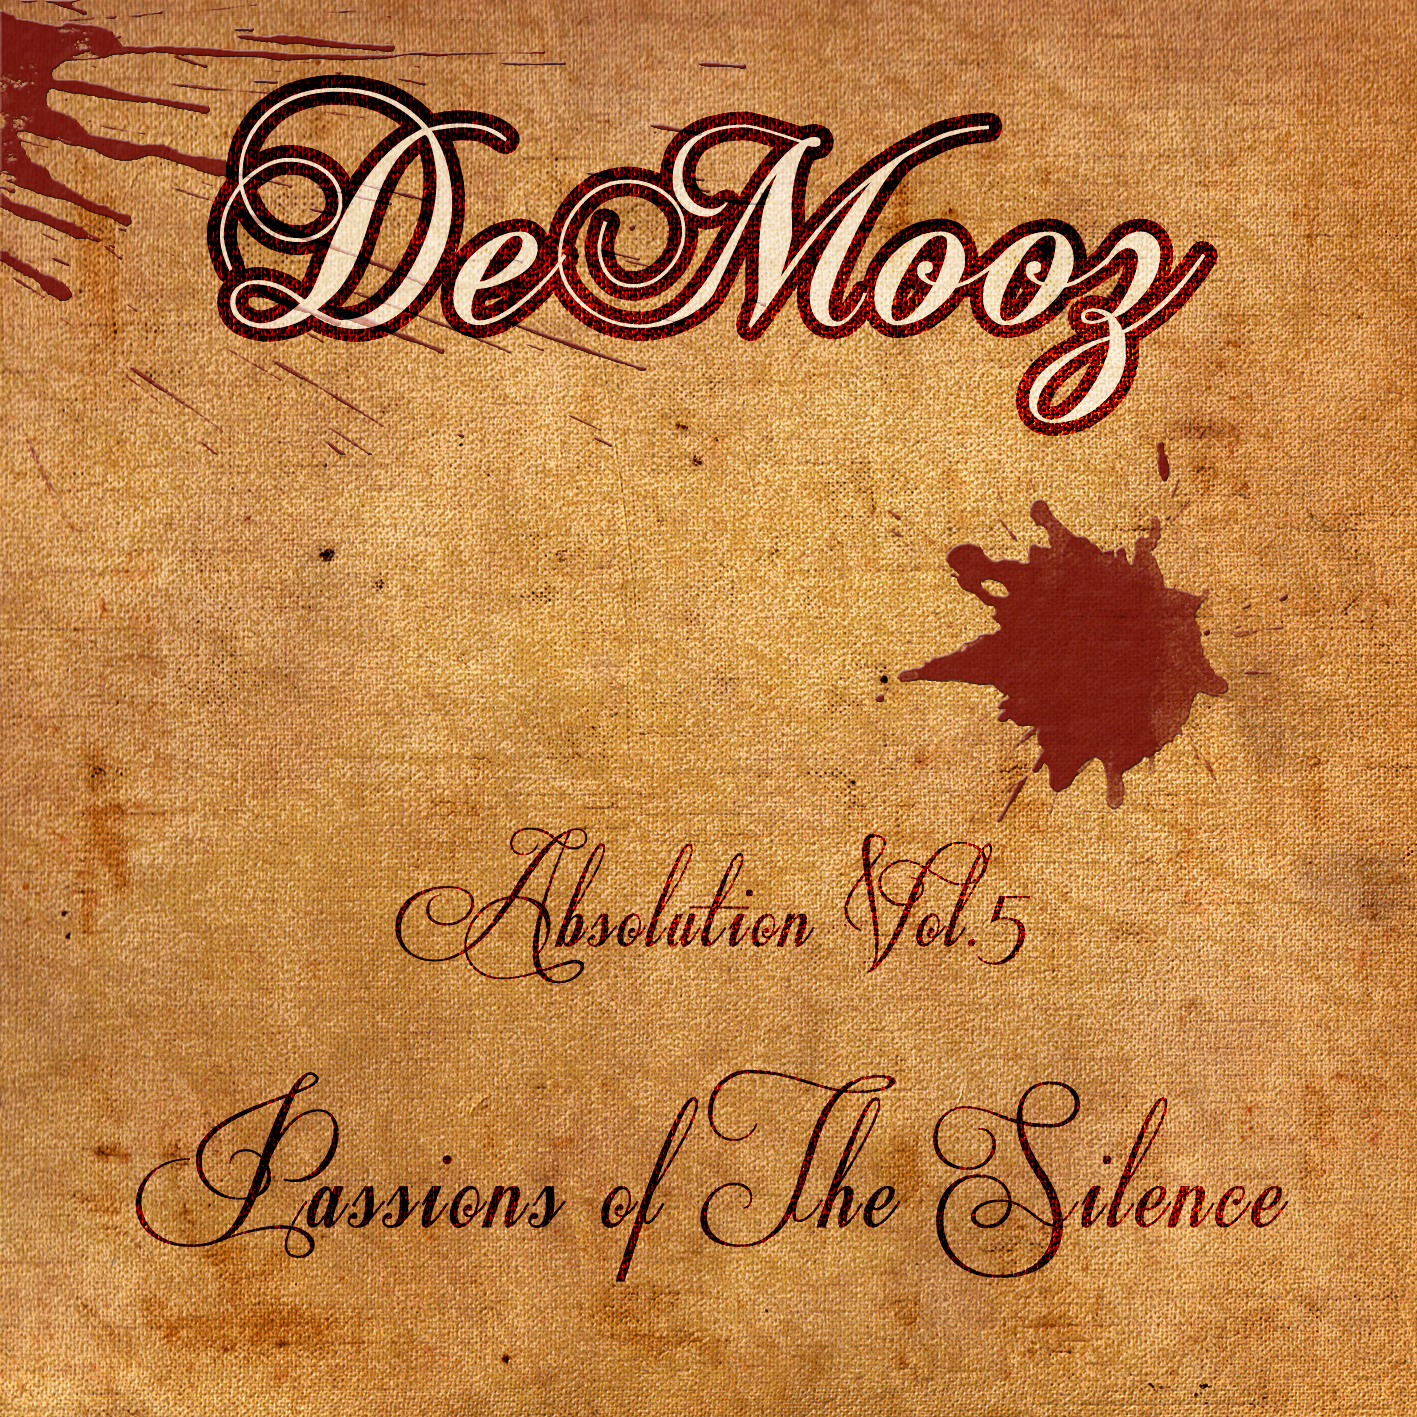 Absolution Vol.5 by DeMooz